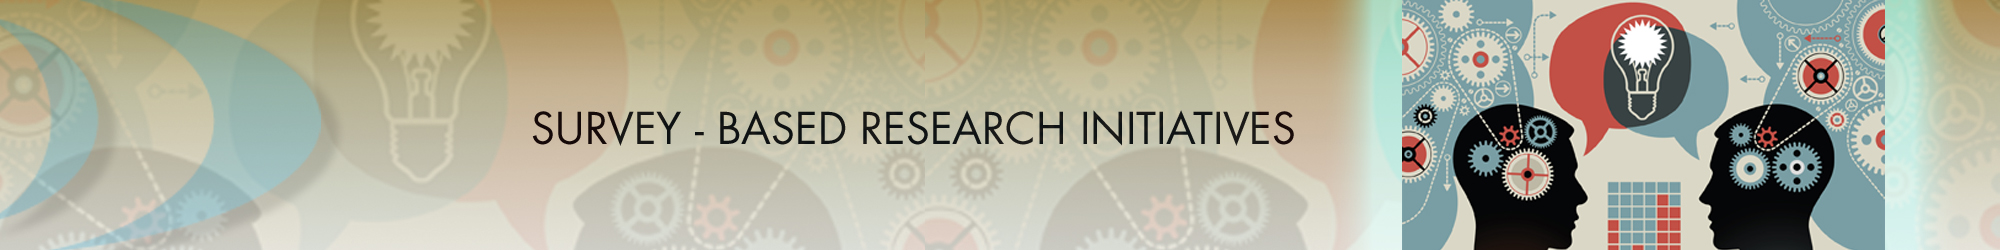 Survey Based Research Banner